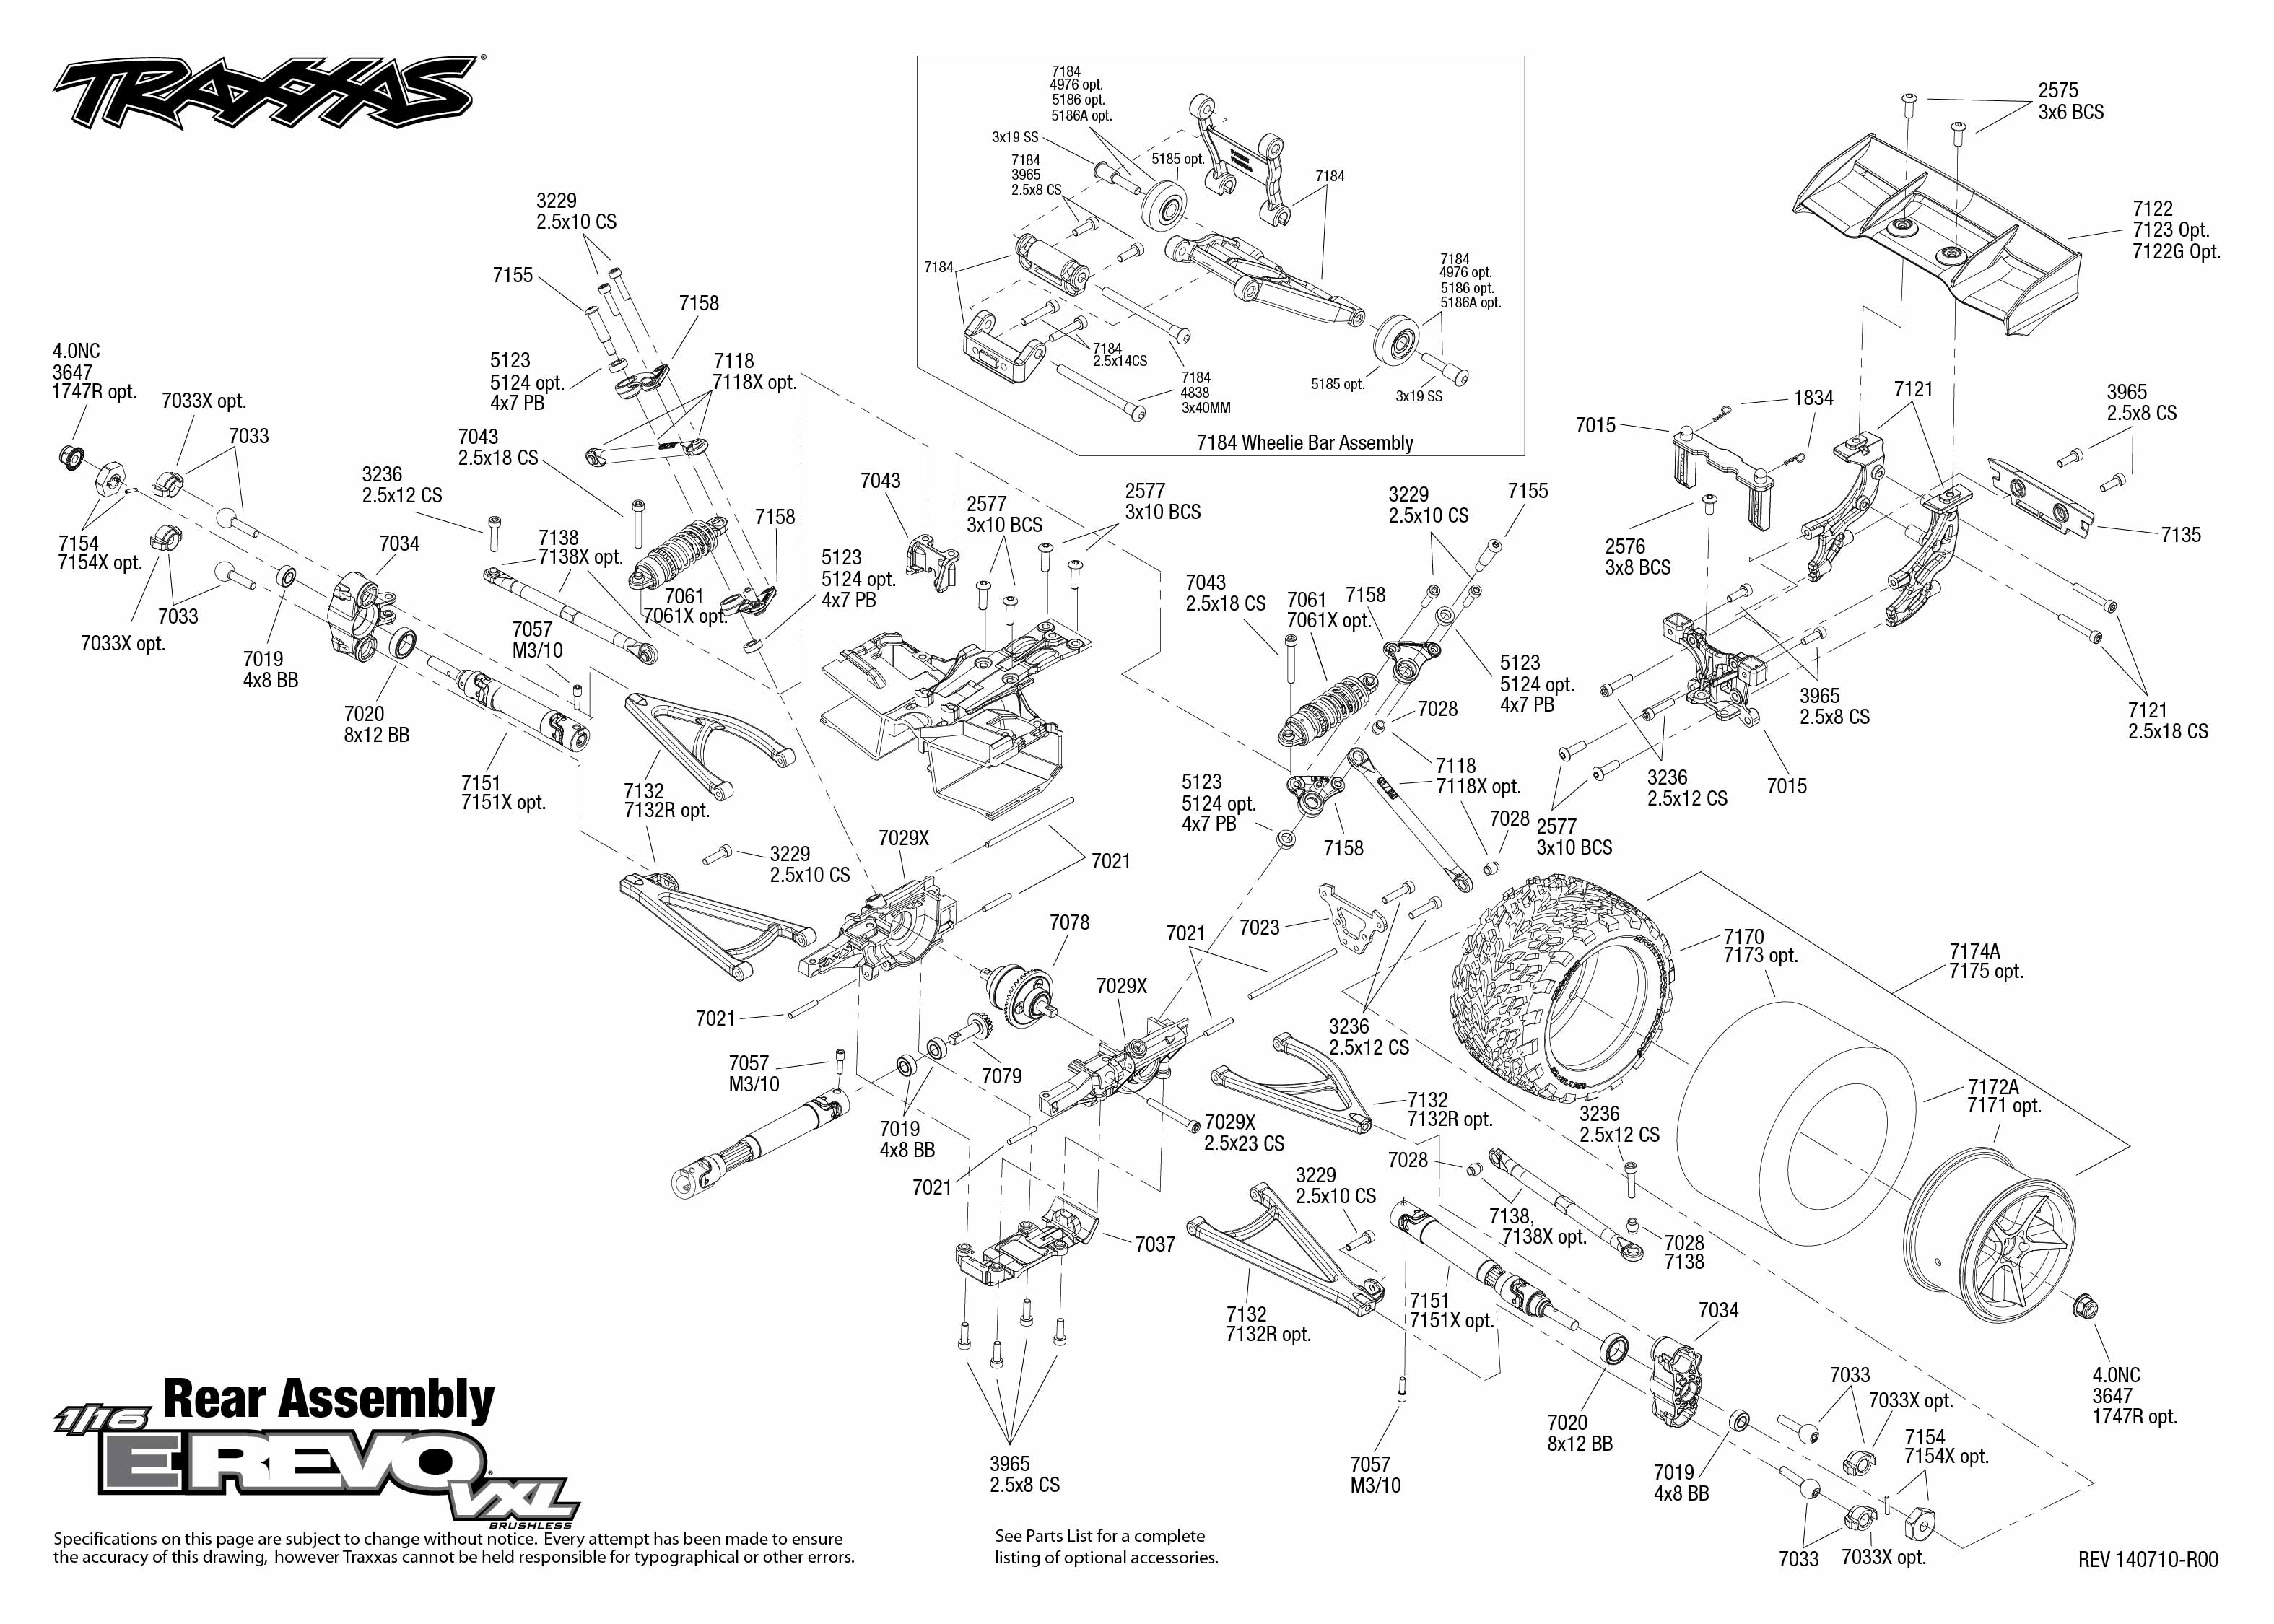 1/16 E-Revo VXL (71074-1) Rear Assembly Exploded View